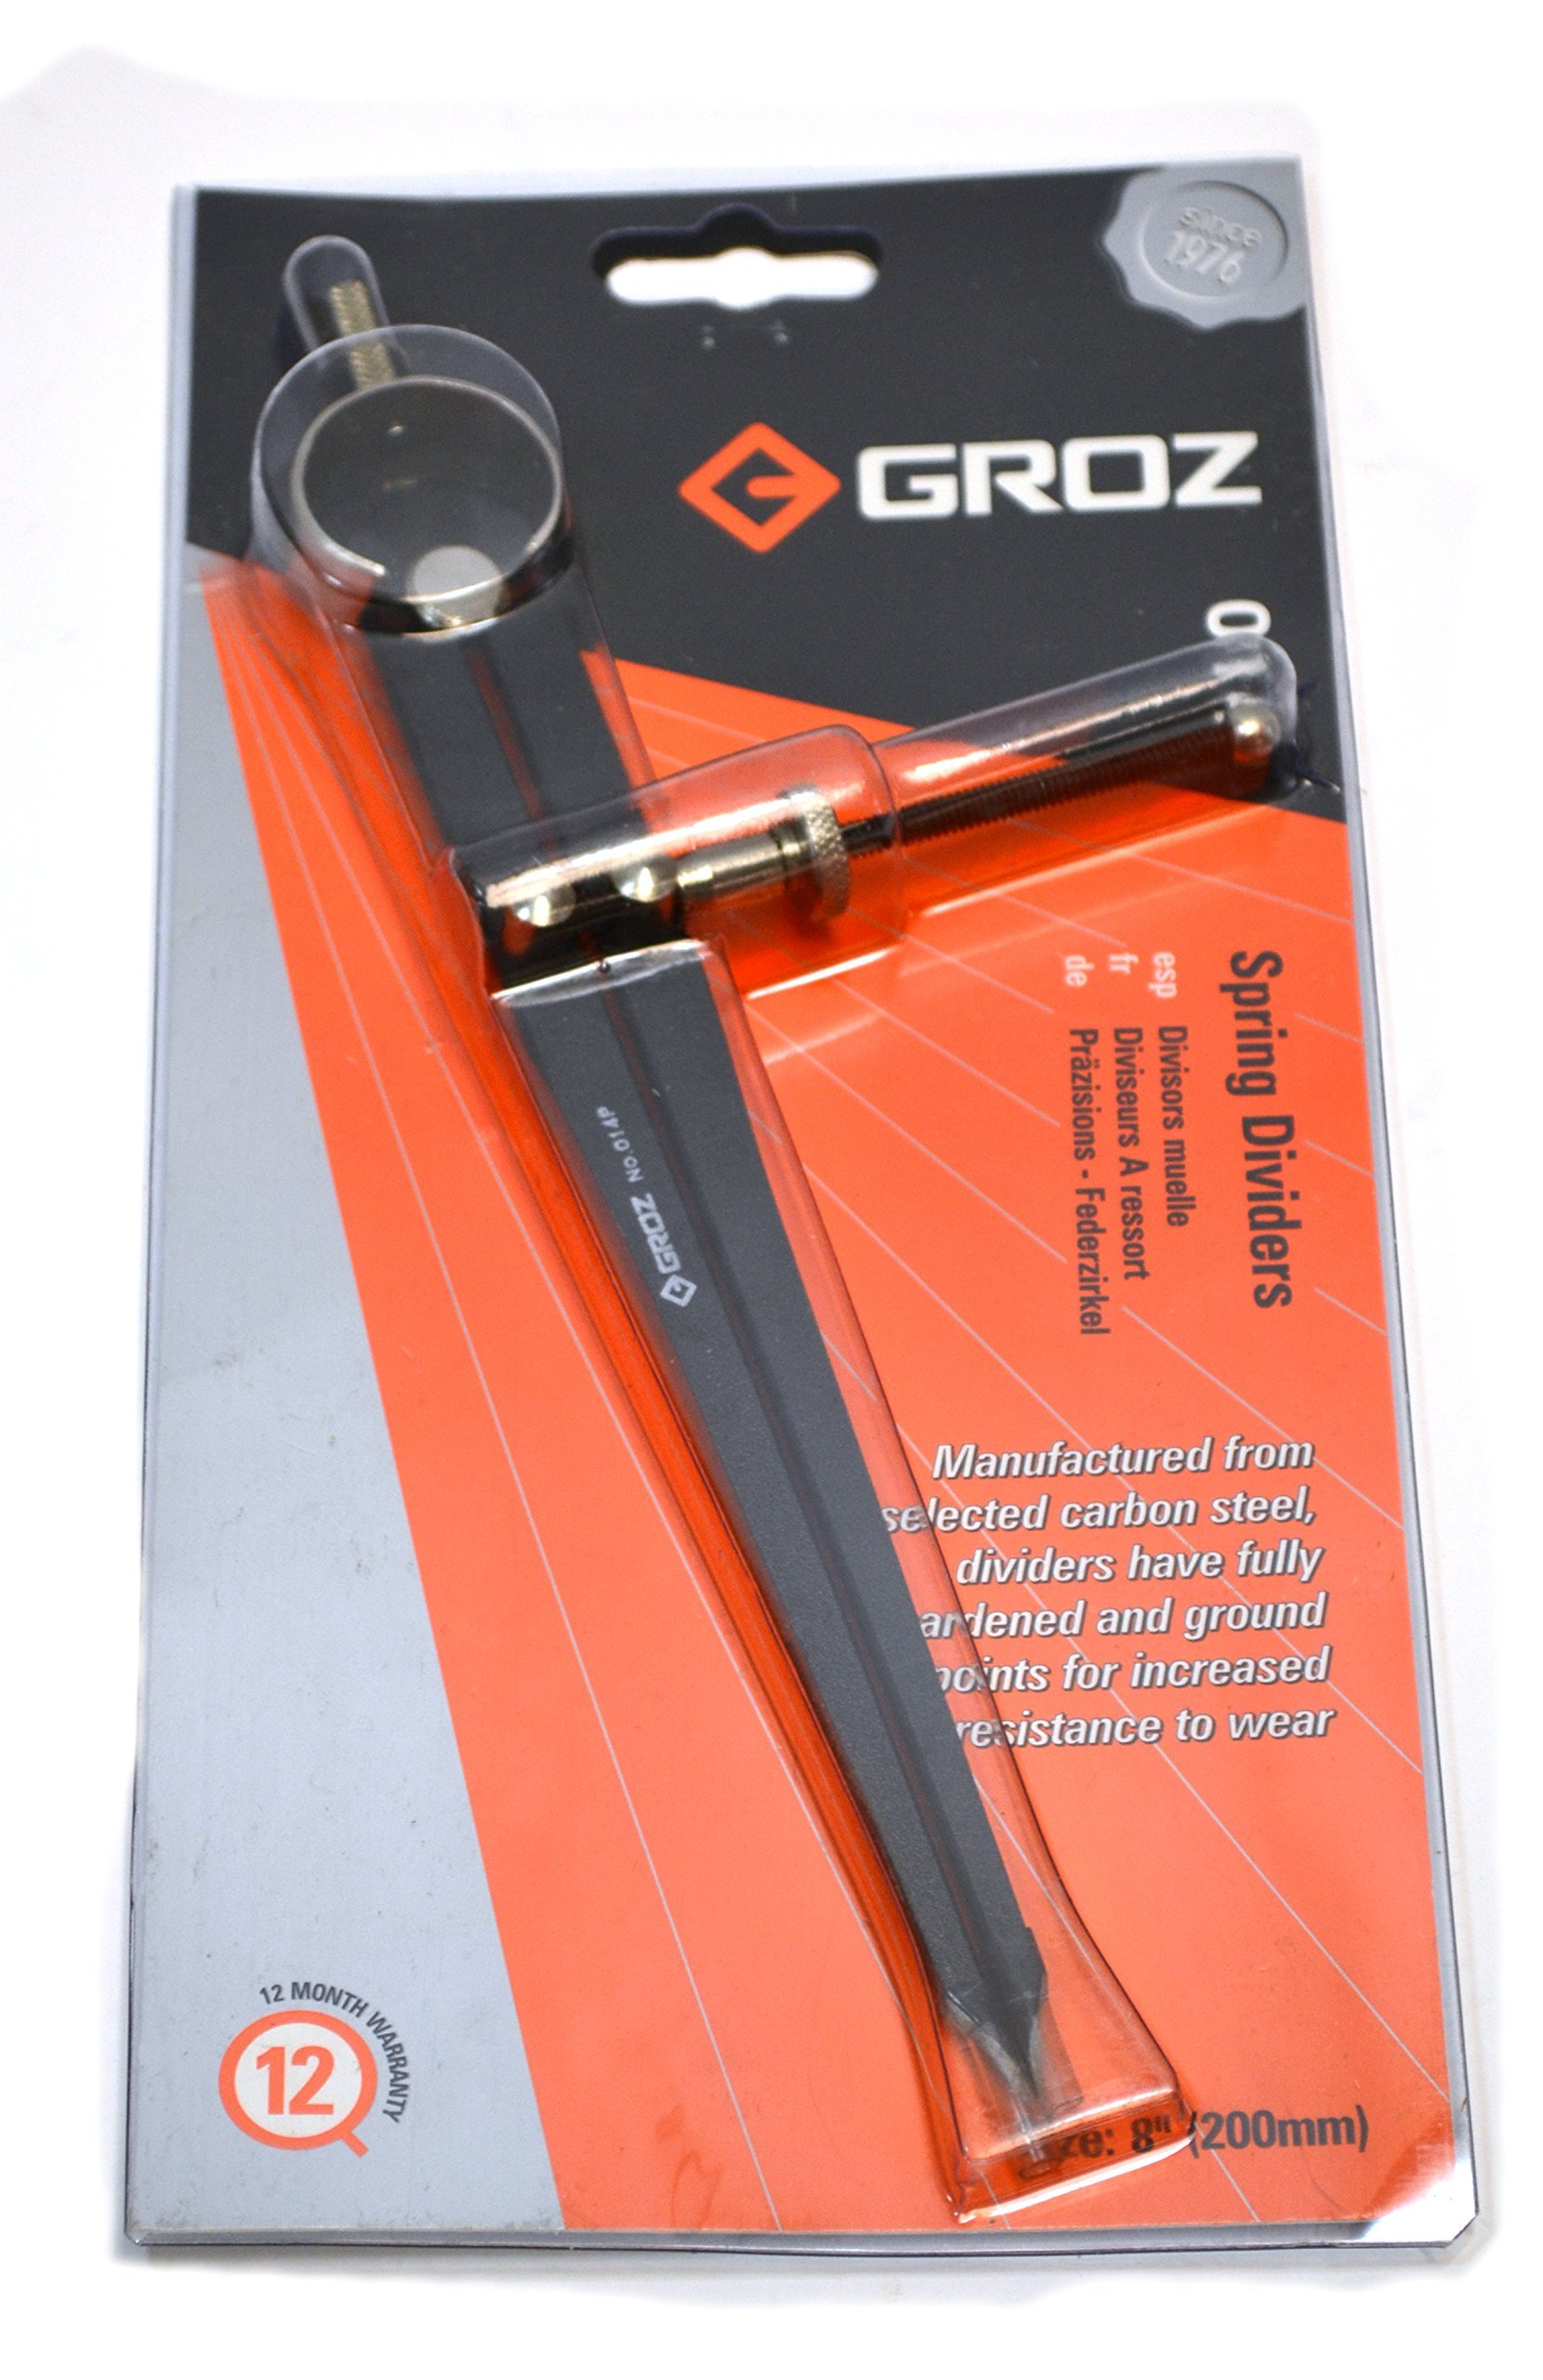 Groz DD/SP/8 Industrial Grade Adjustable Divider, 200 mm